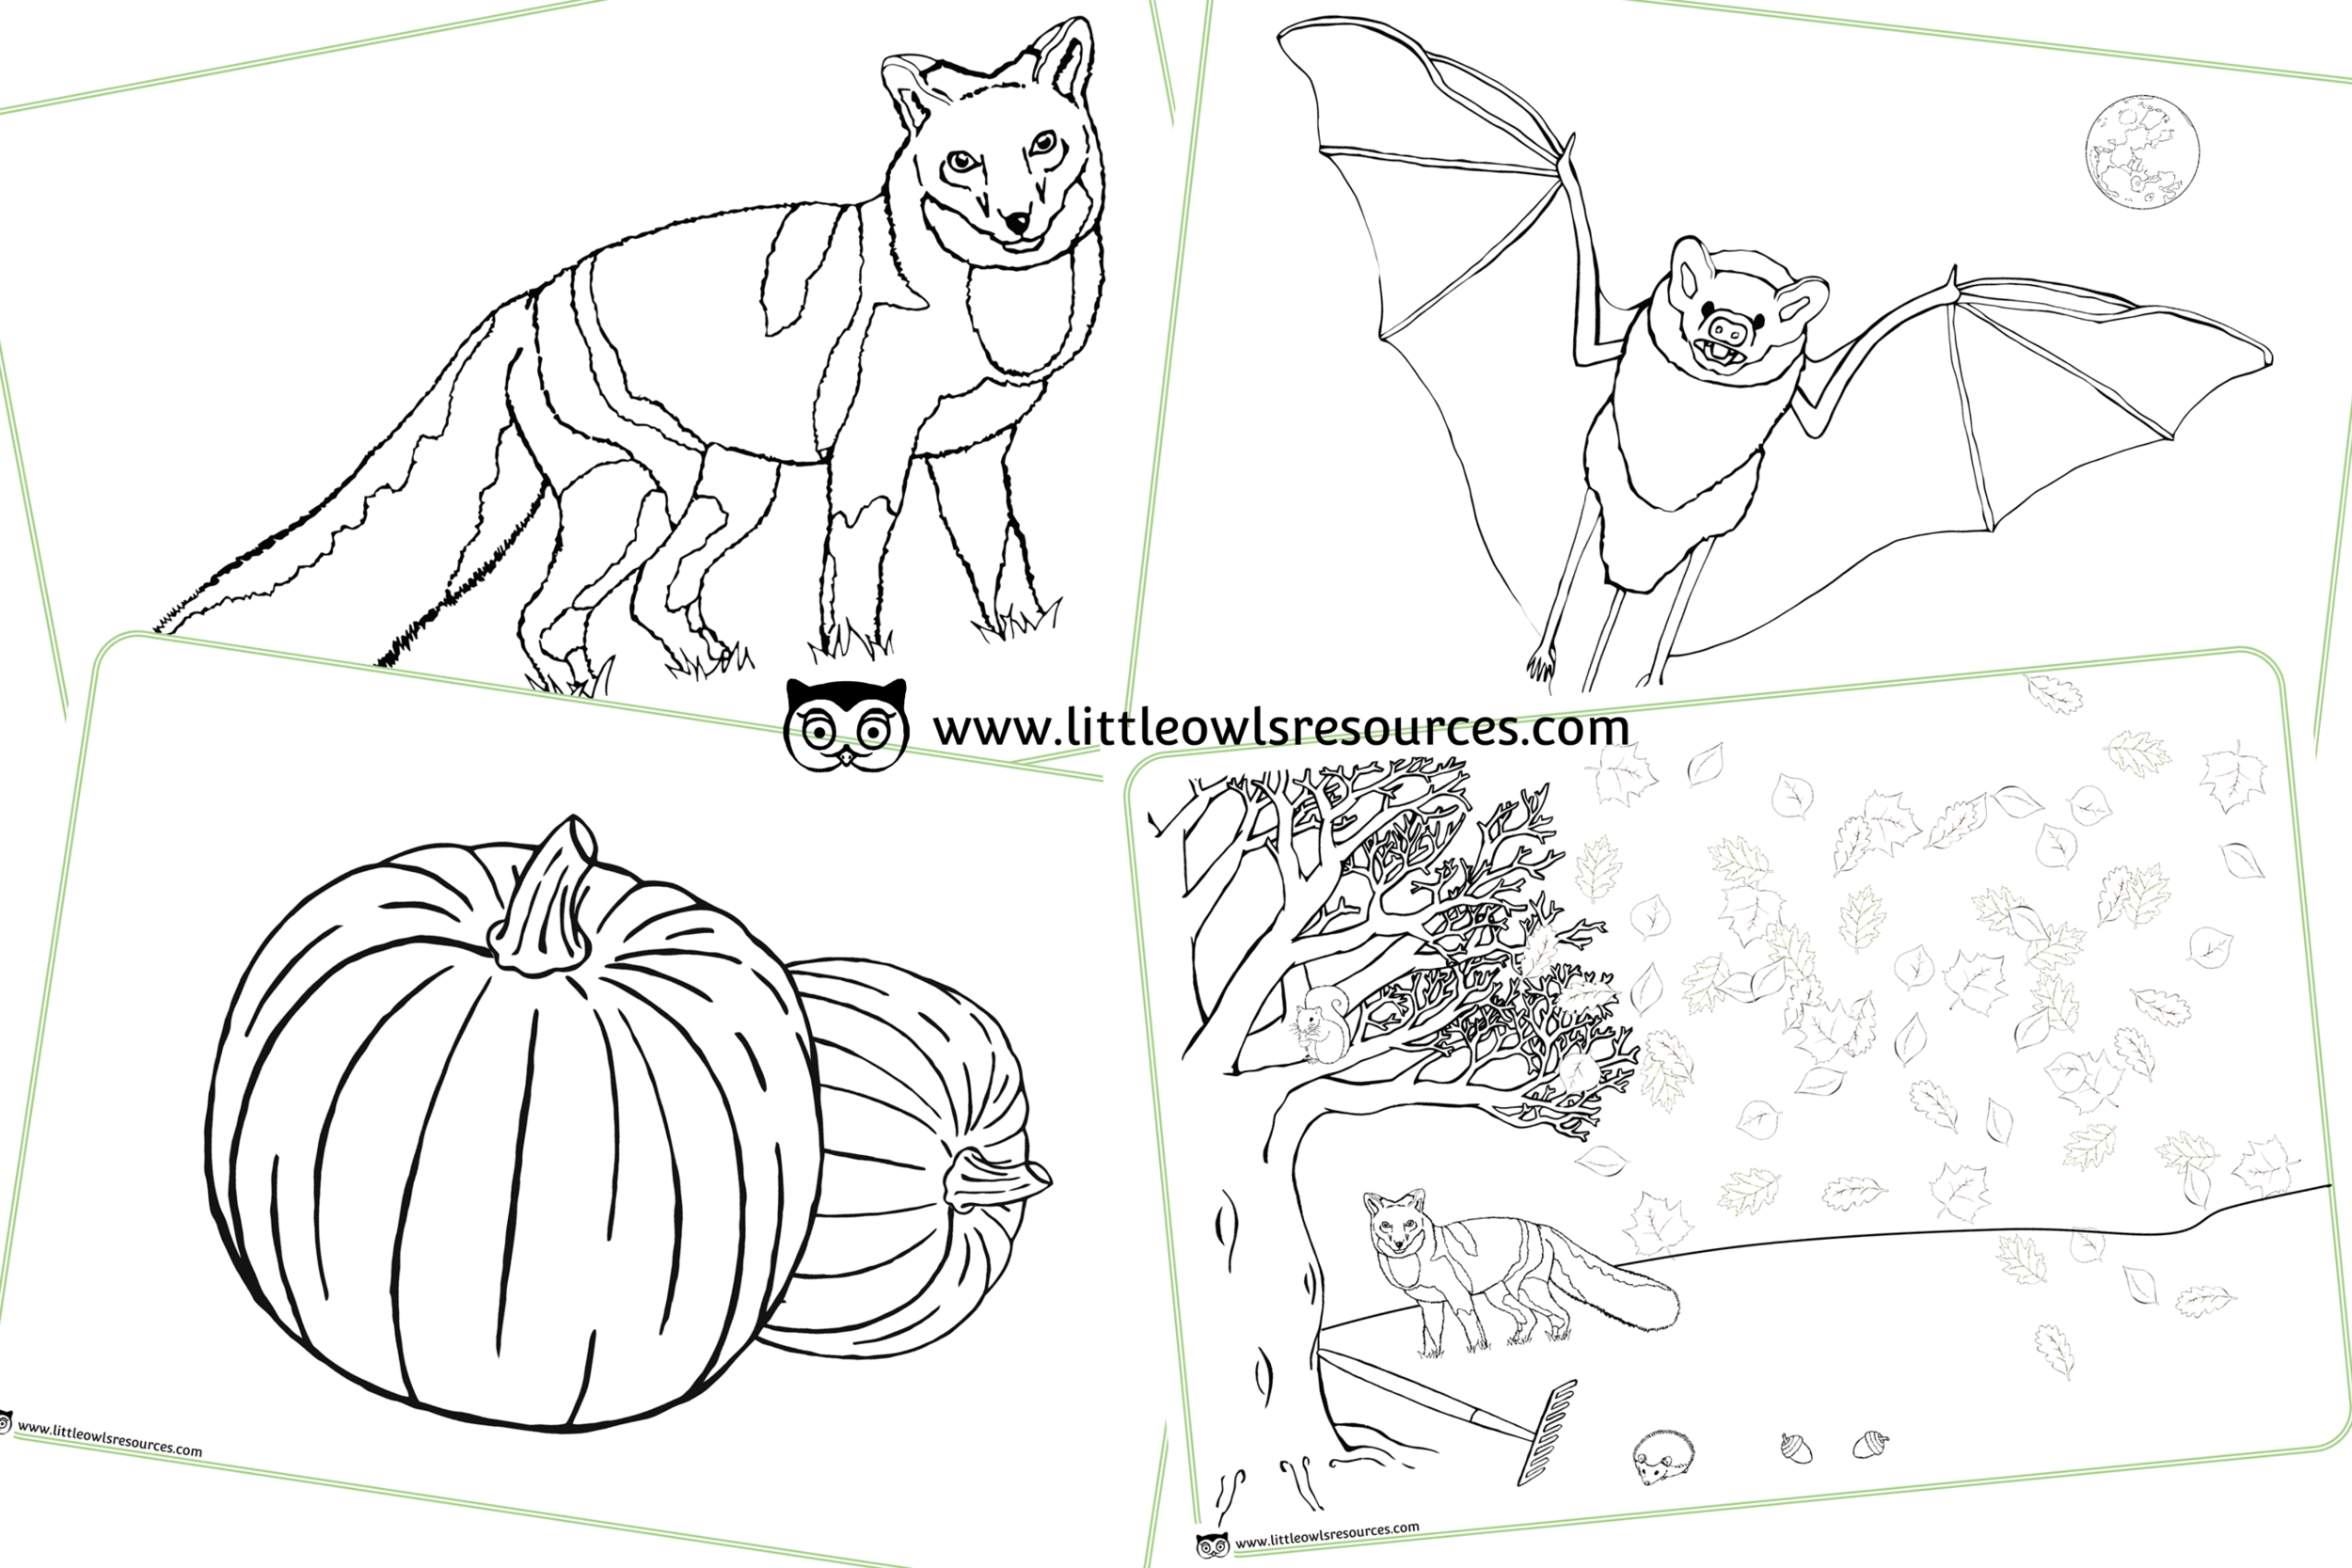 Autumn Theme/Topic/Season Colouring Pages/Activity